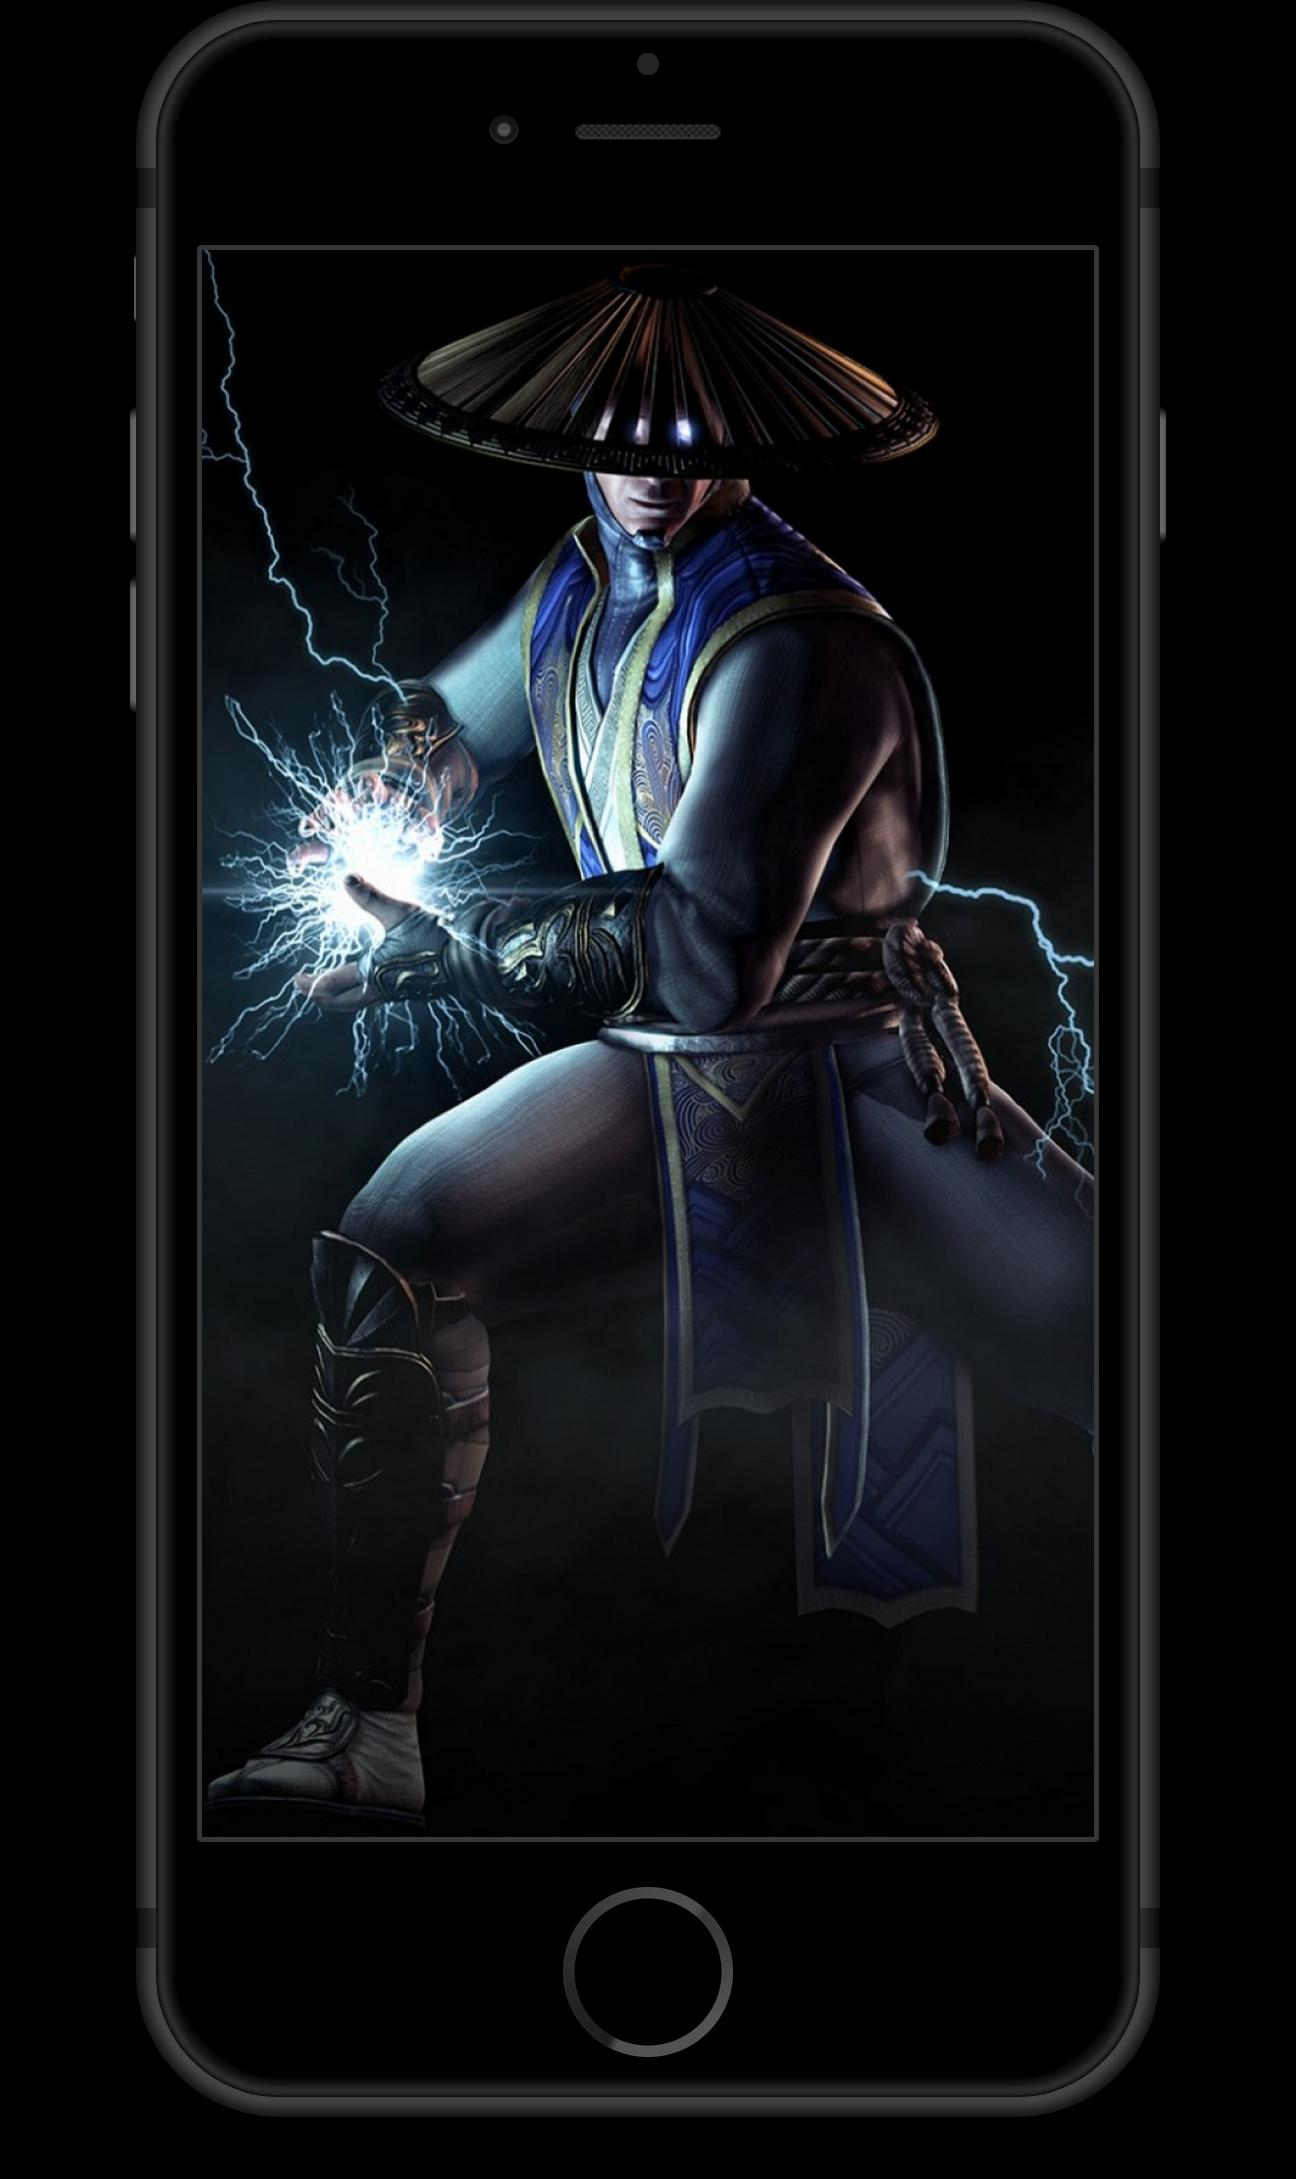 Mortal Kombat Wallpapers Hd Für Android Apk Herunterladen